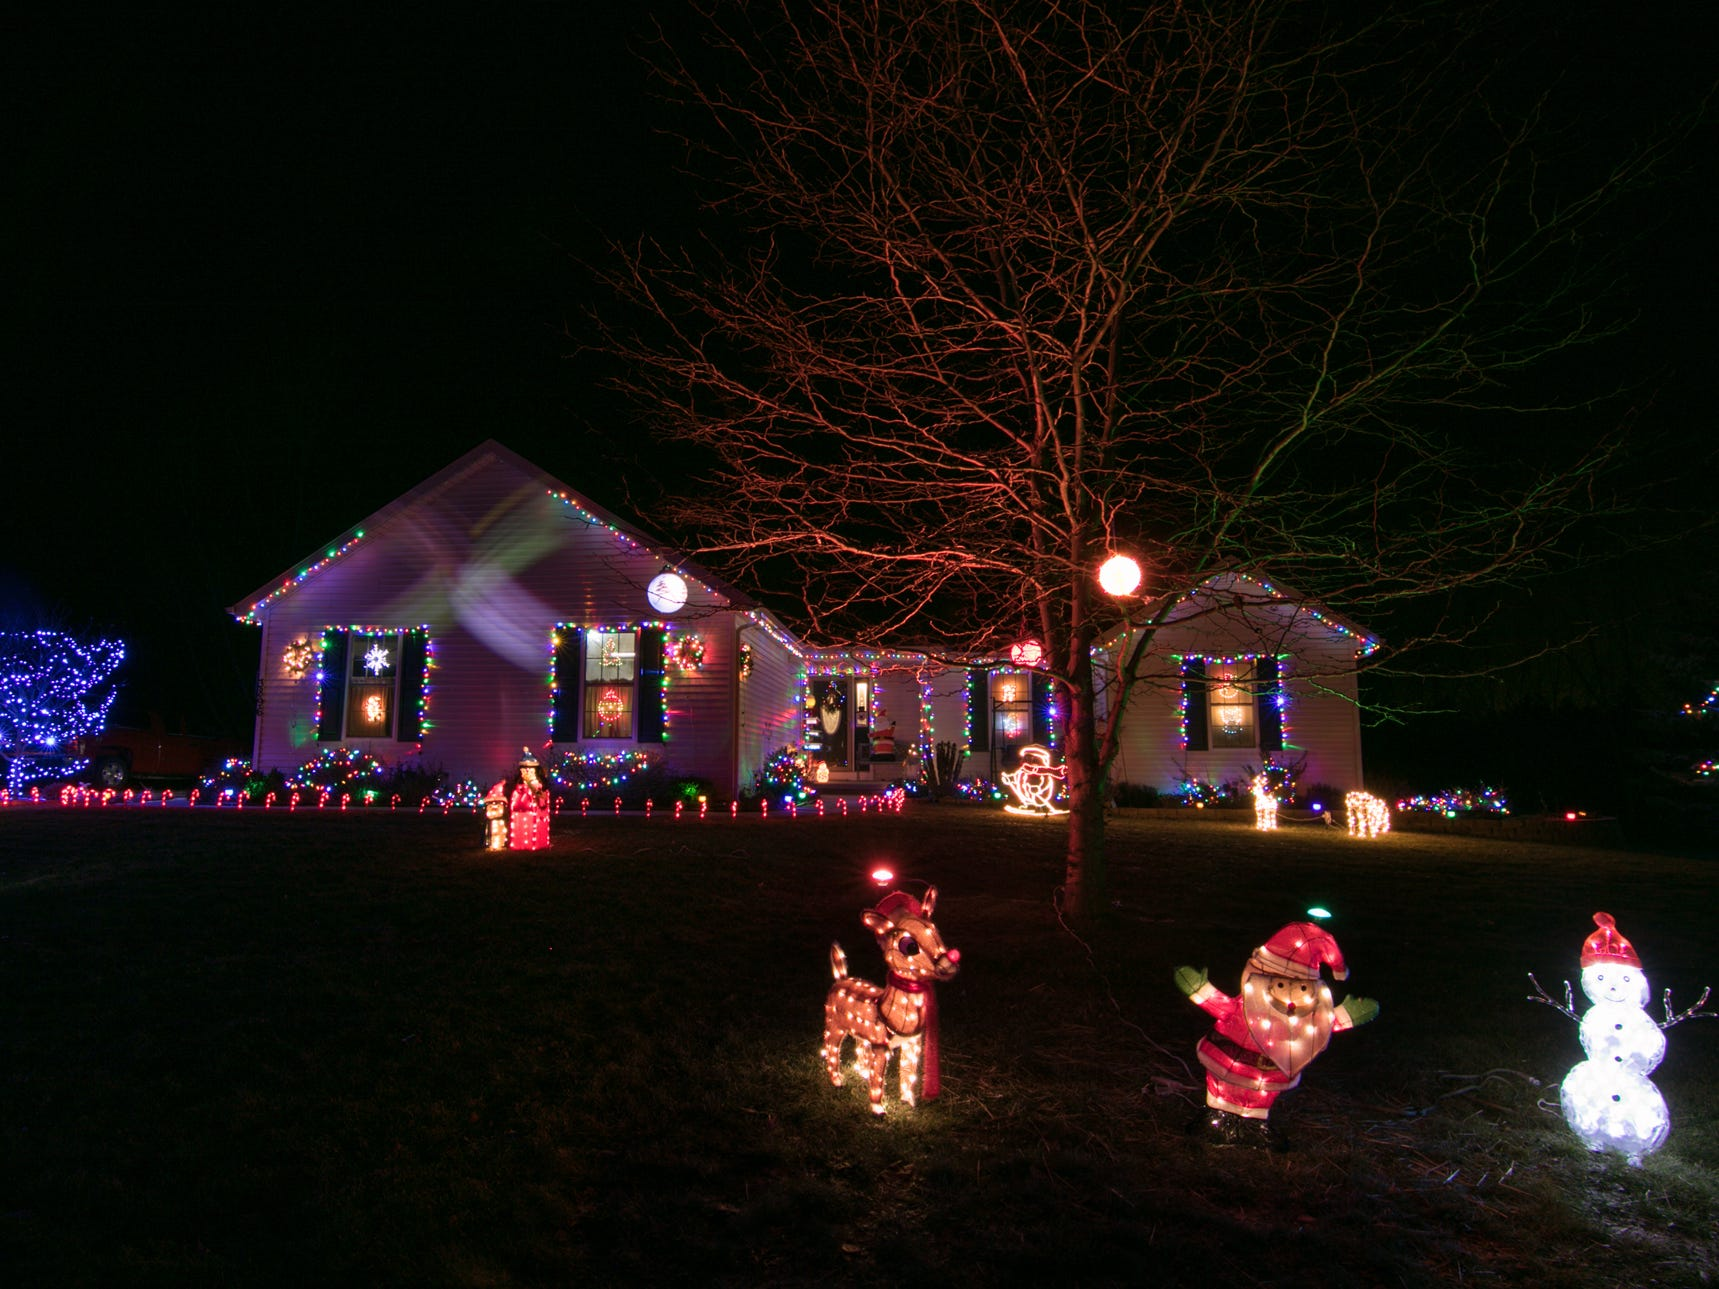 3896 Beckley Dr., Oceola Twp., the home of Carrie Holder and Mike Young shown Thursday, Dec. 6, 2018. Vote on your favorite home by emailing gbenedict@livingstondaily.com by midnight of Jan. 2, 2019.